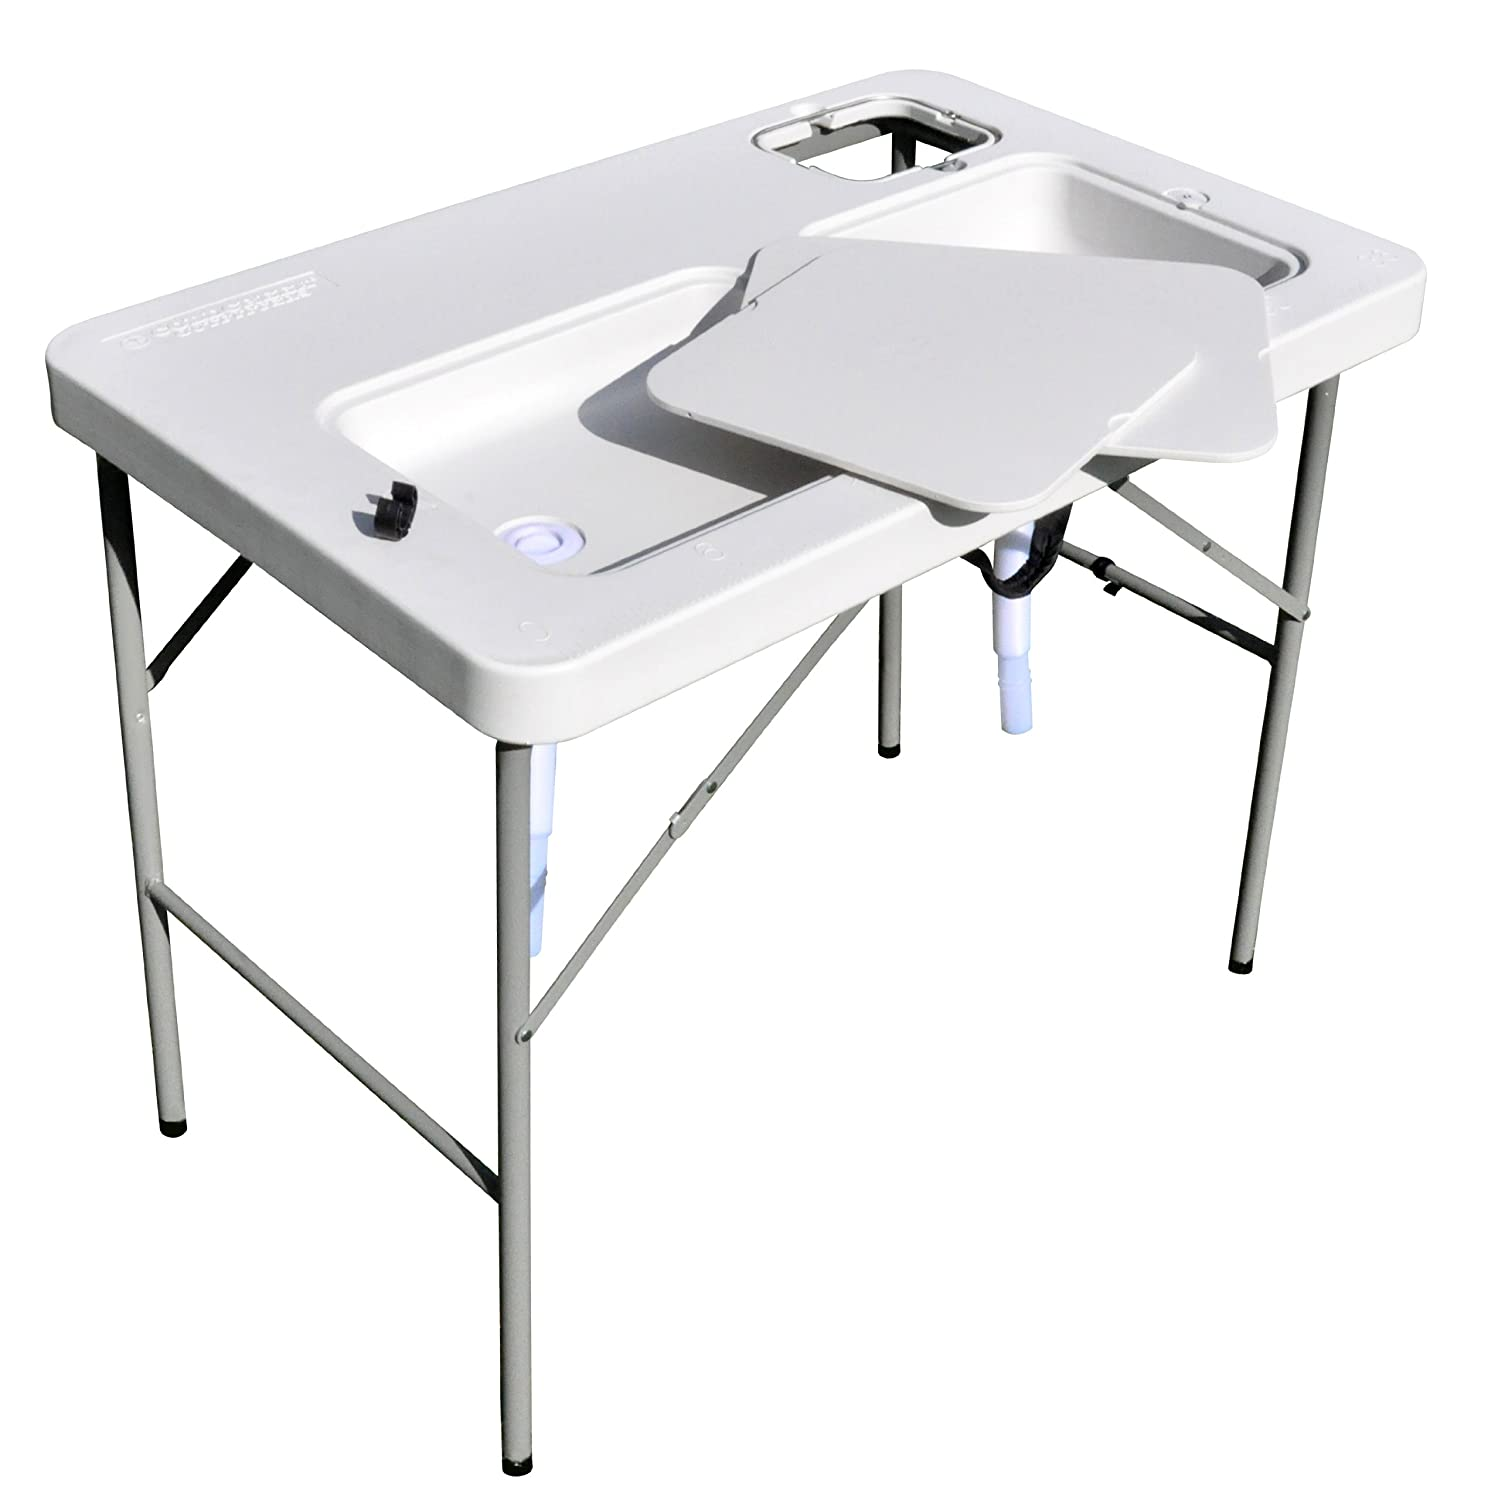 Coldcreek Ultimate Outdoor Workstation, Perfect Fish And Game Cleaning Table,  Full Drain System,